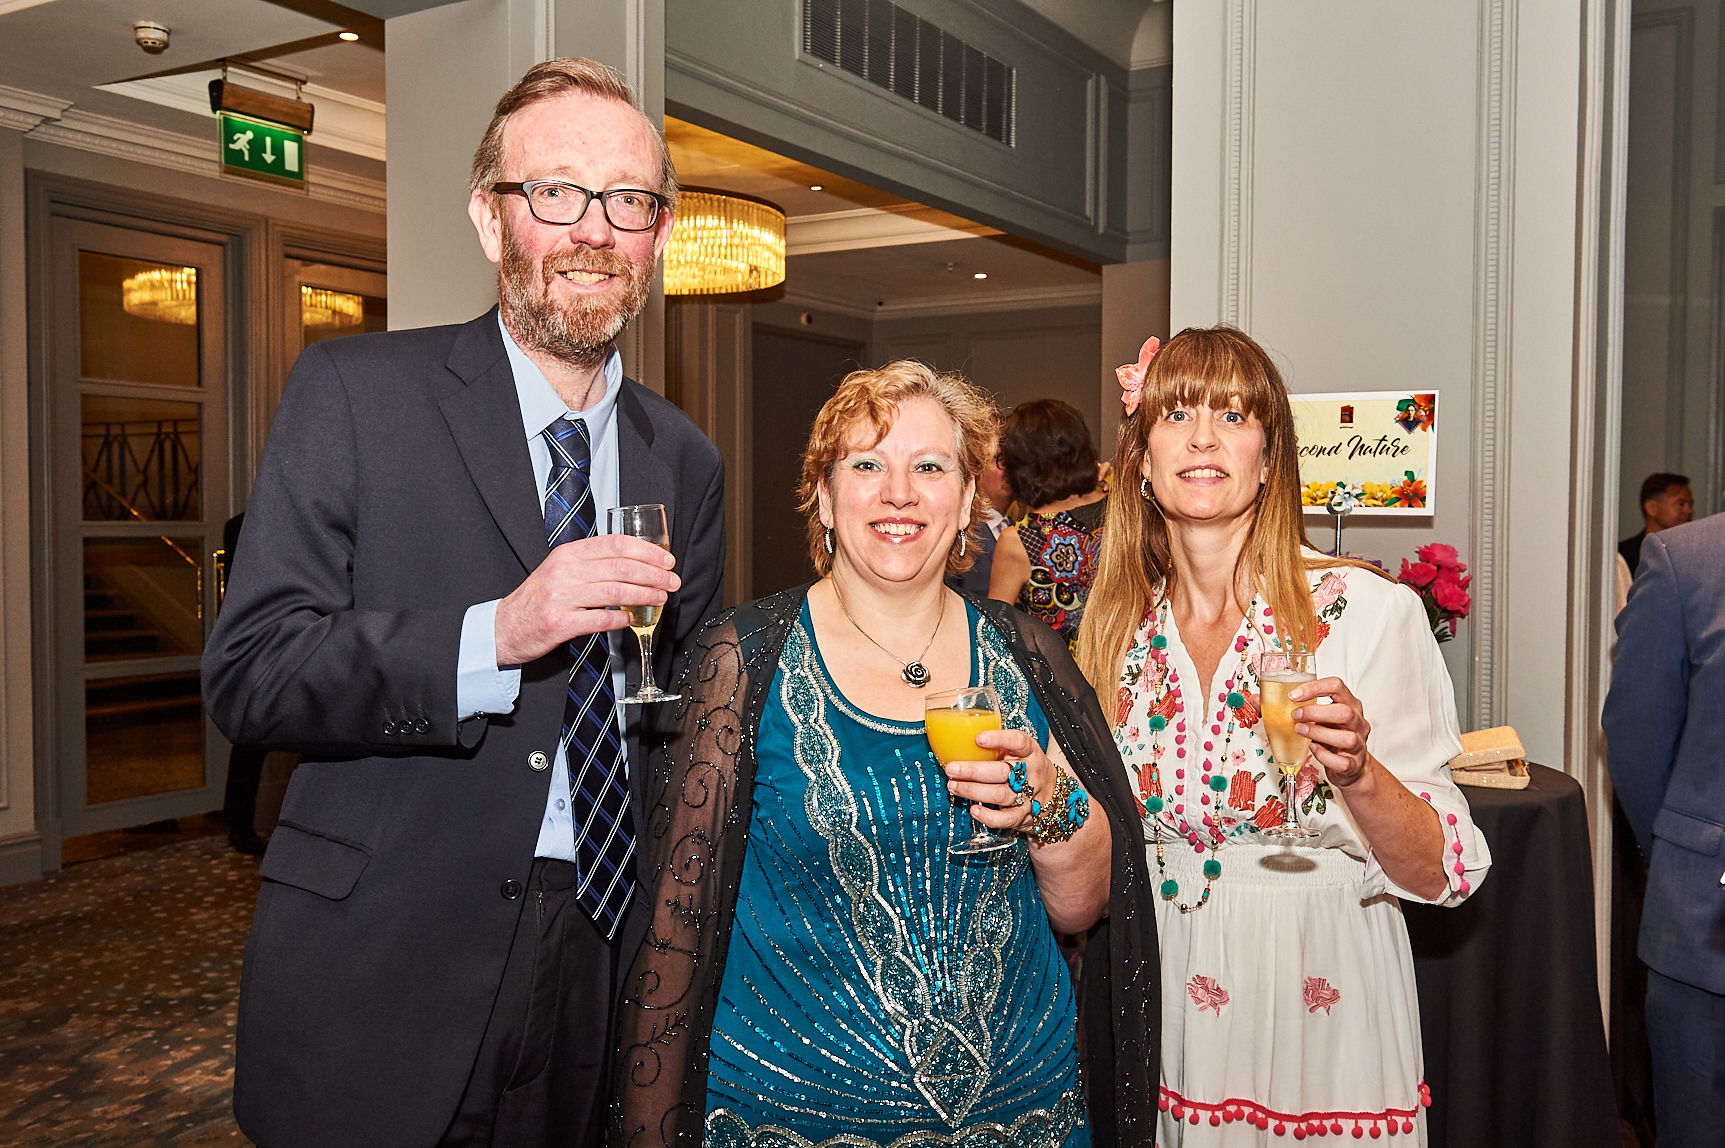 Above: Film maker Gale Astley (right) with independent retailers Beverley and John Hayworth of Blue Rose Gifts (in Heywood) at The Retas retail awards last year.